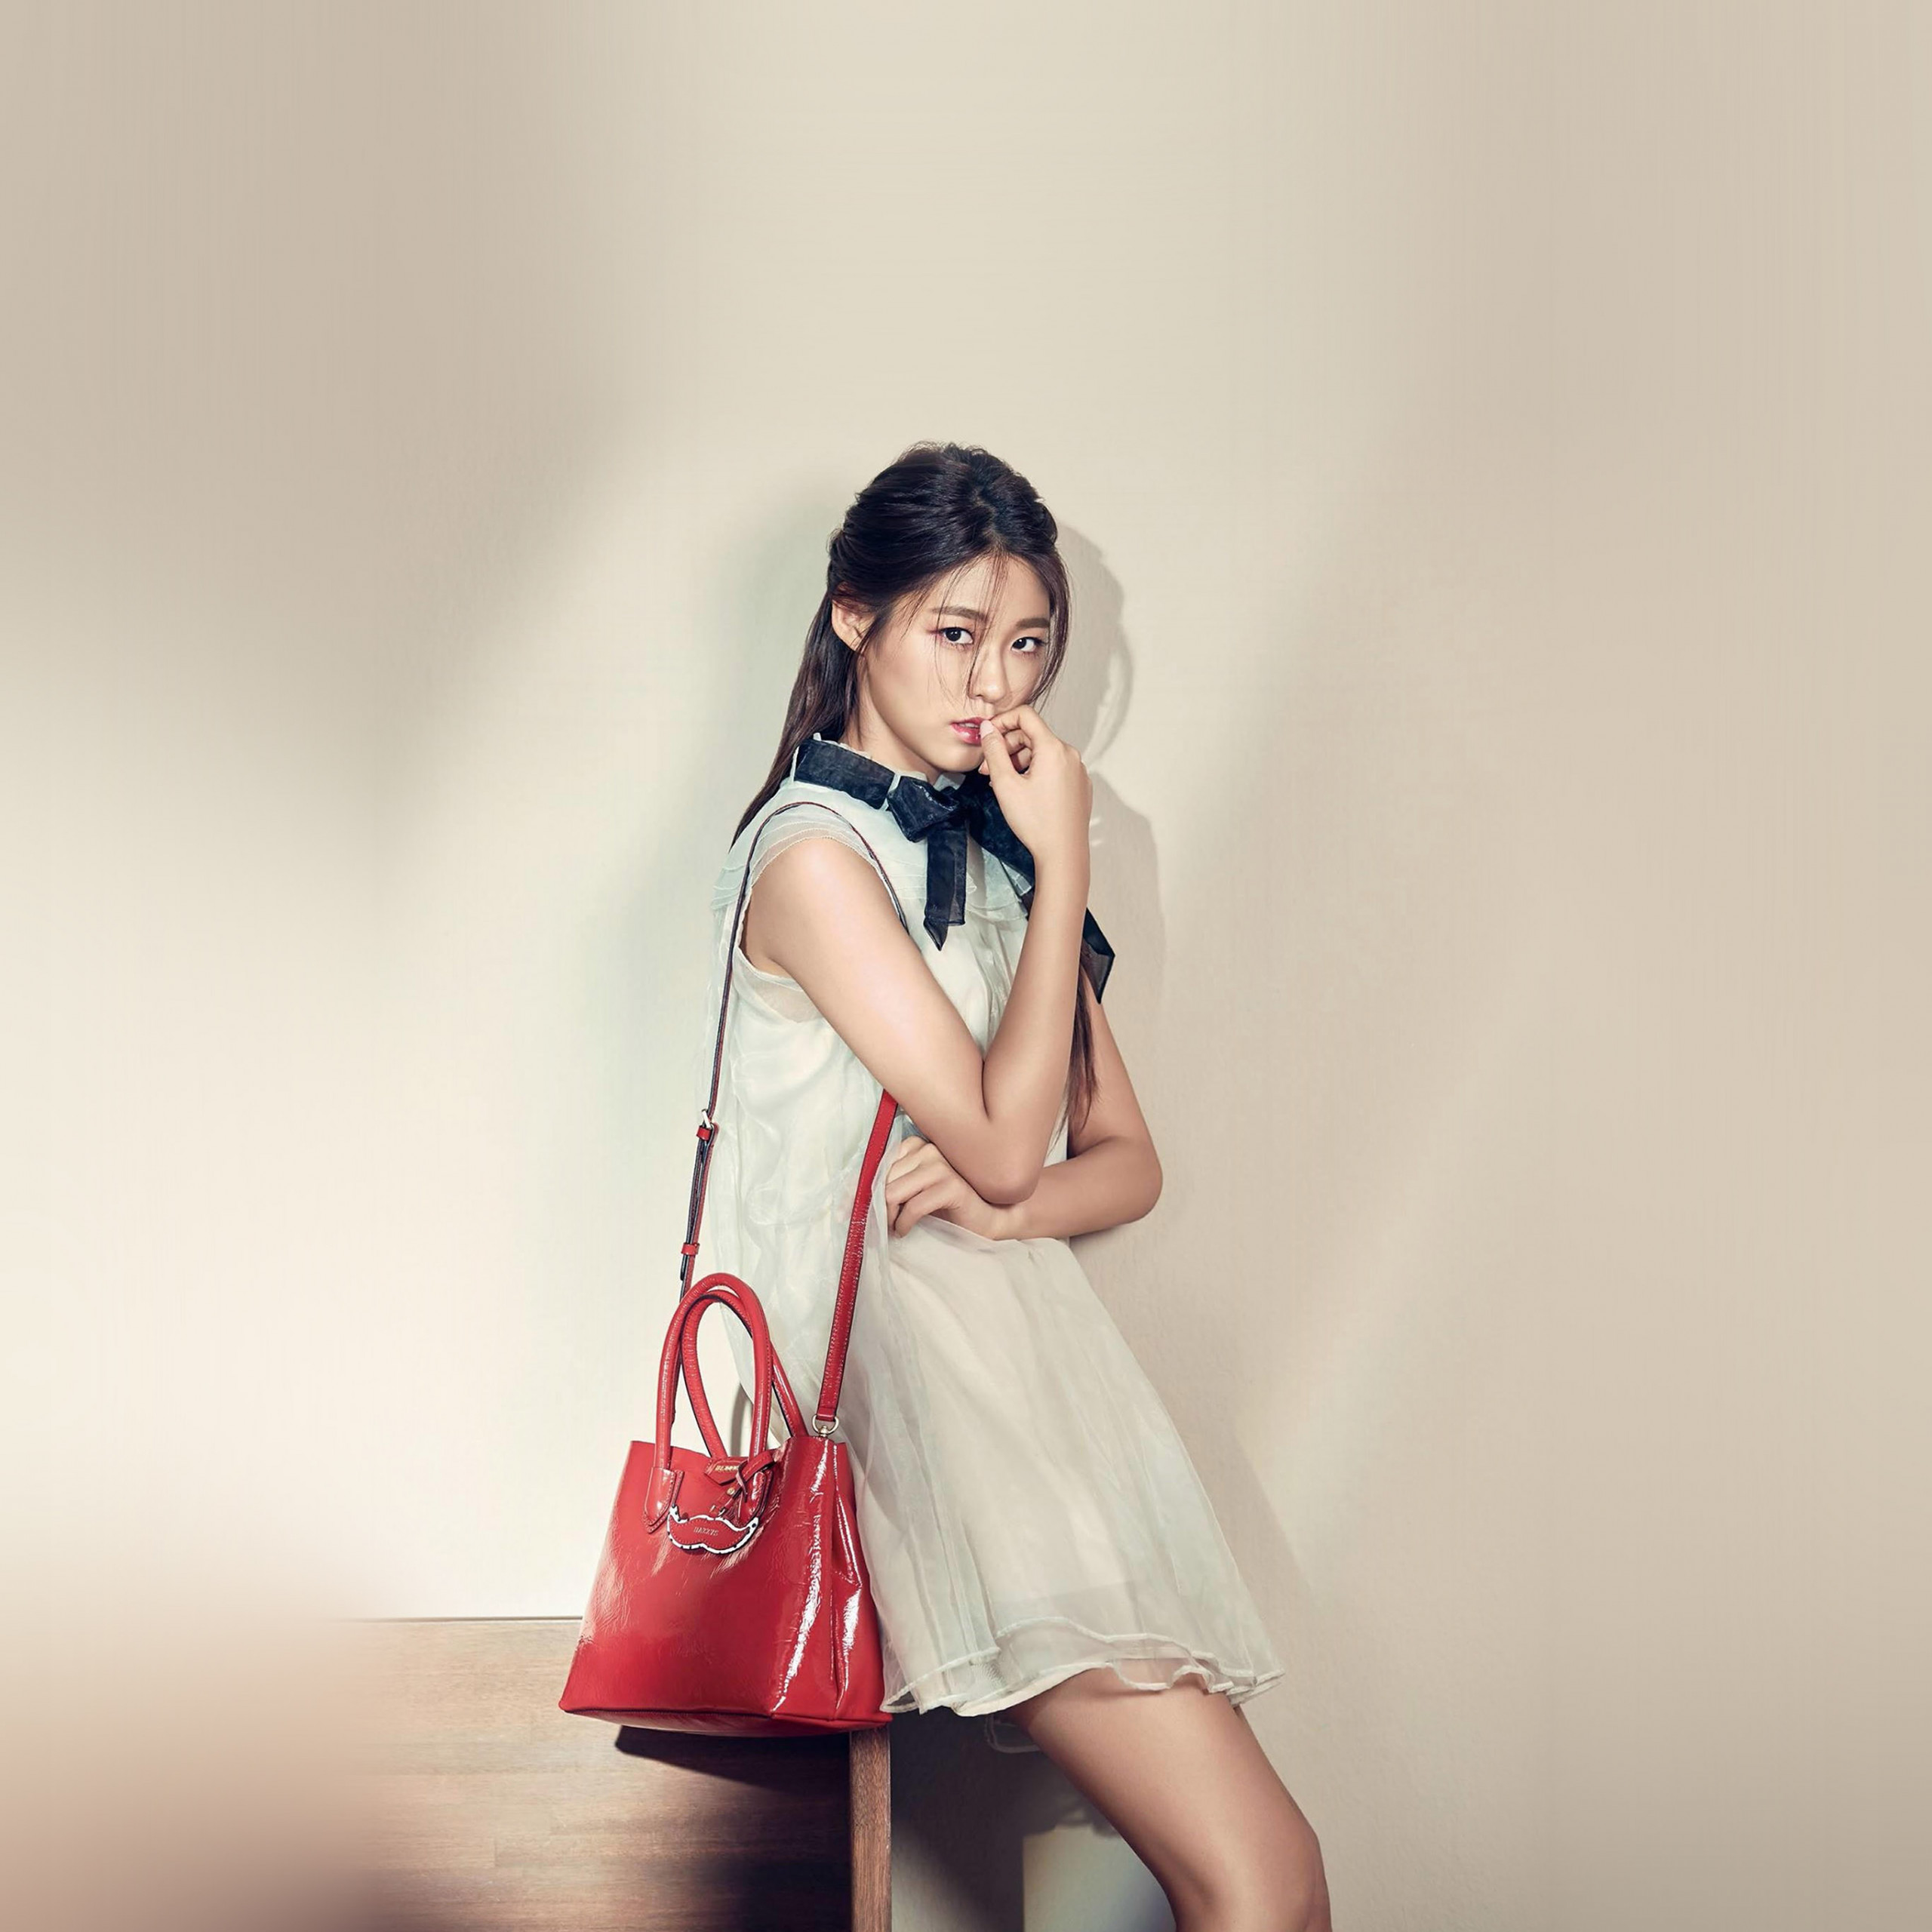 papers hq73 kpop girl sulhyun red bag 40 wallpaper